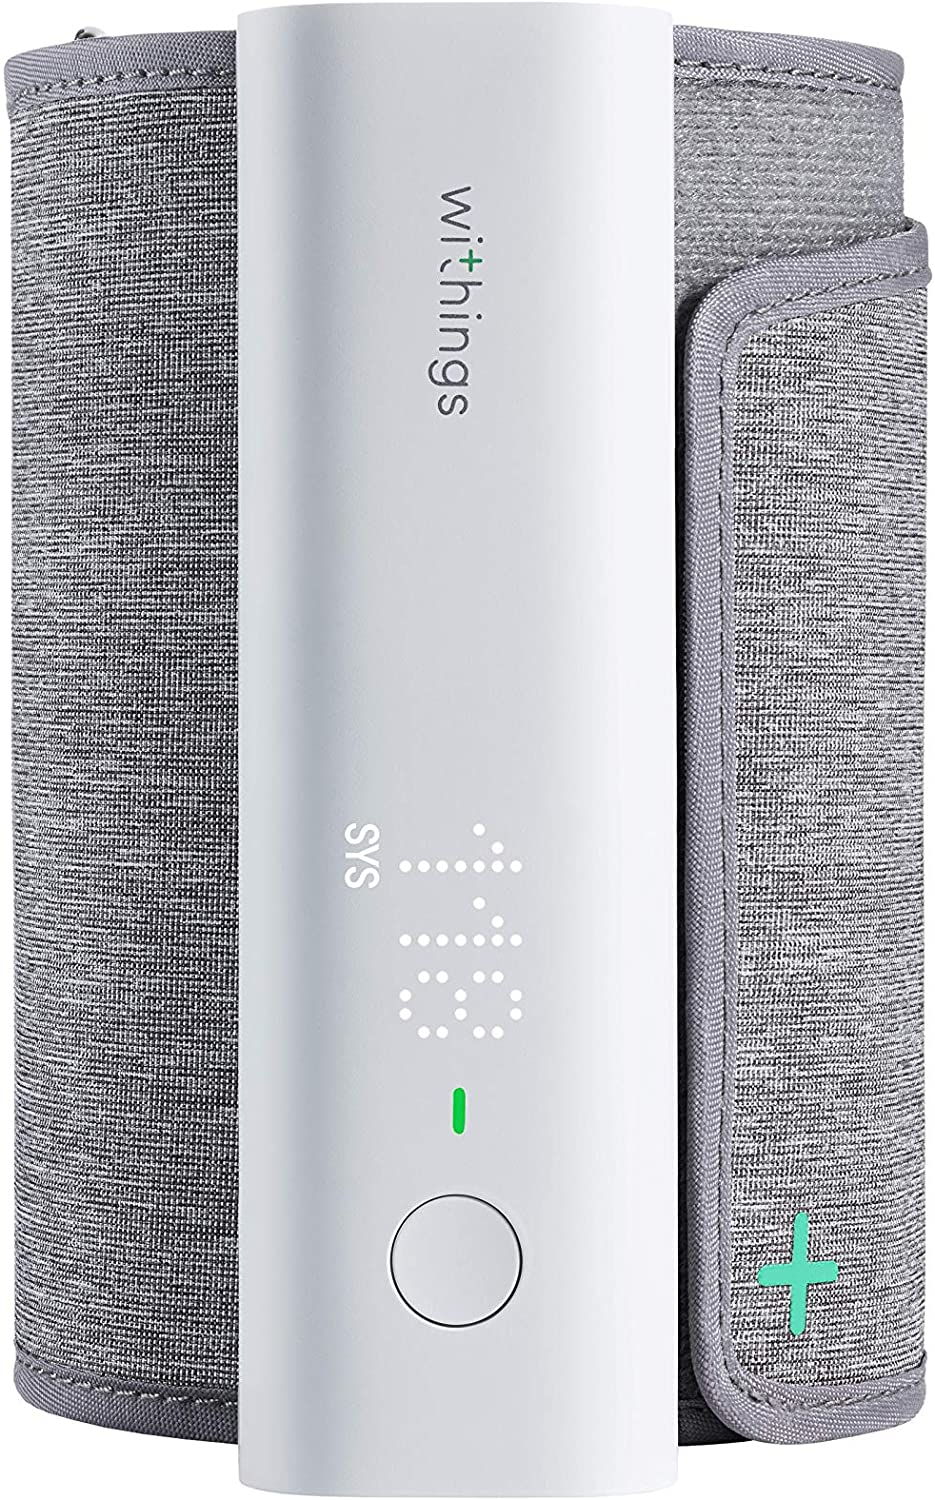 Withings Wi-Fi FDA Approved Blood Pressure Monitor